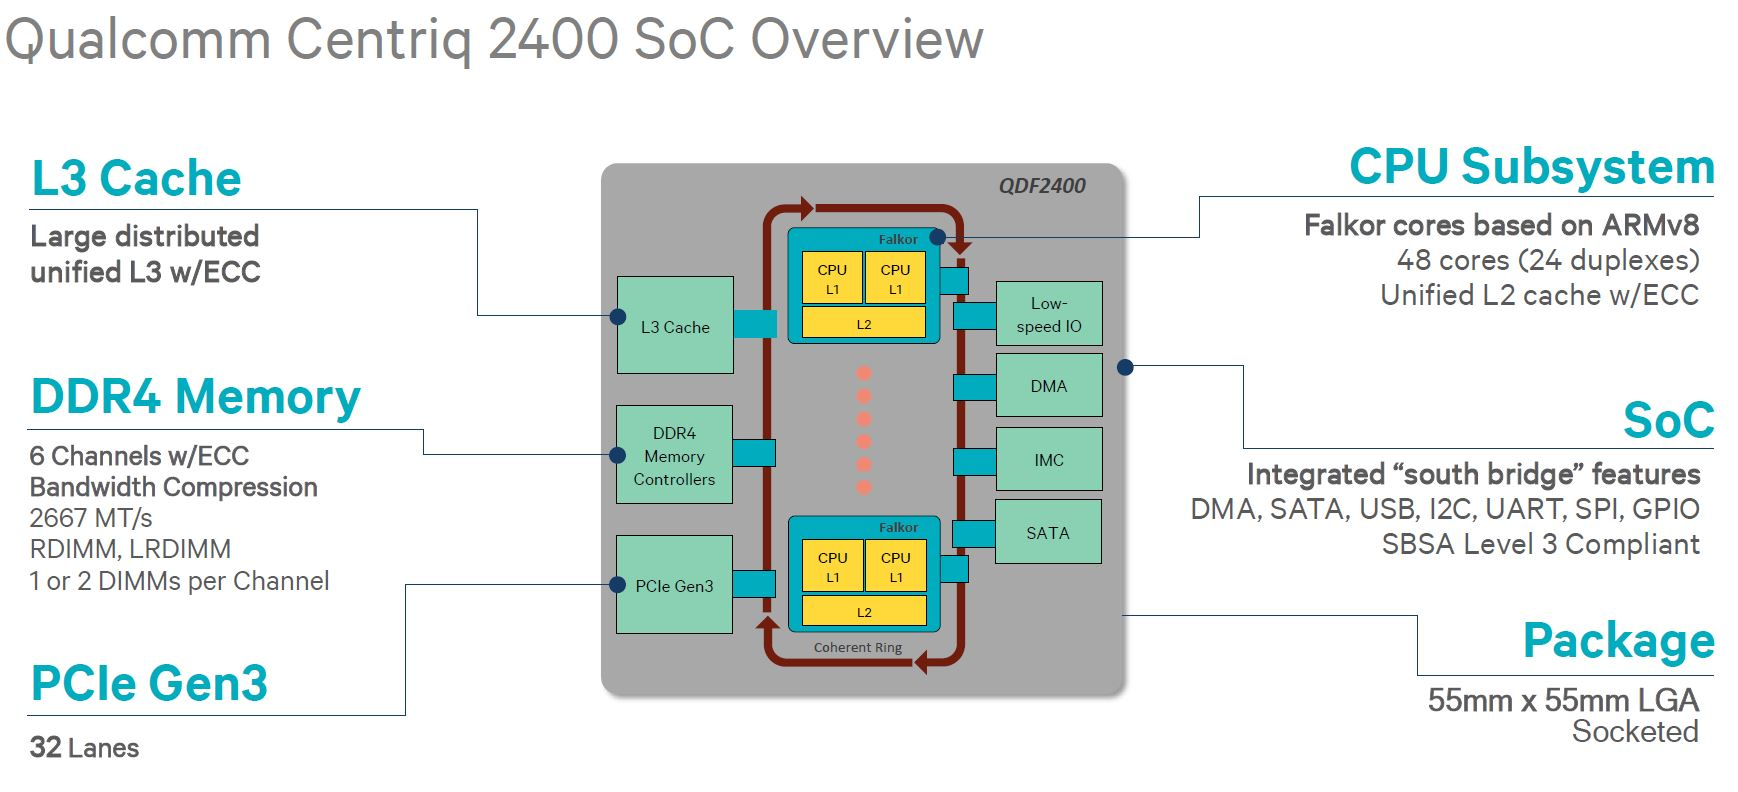 Qualcomm Centriq 2400 SoC Overview